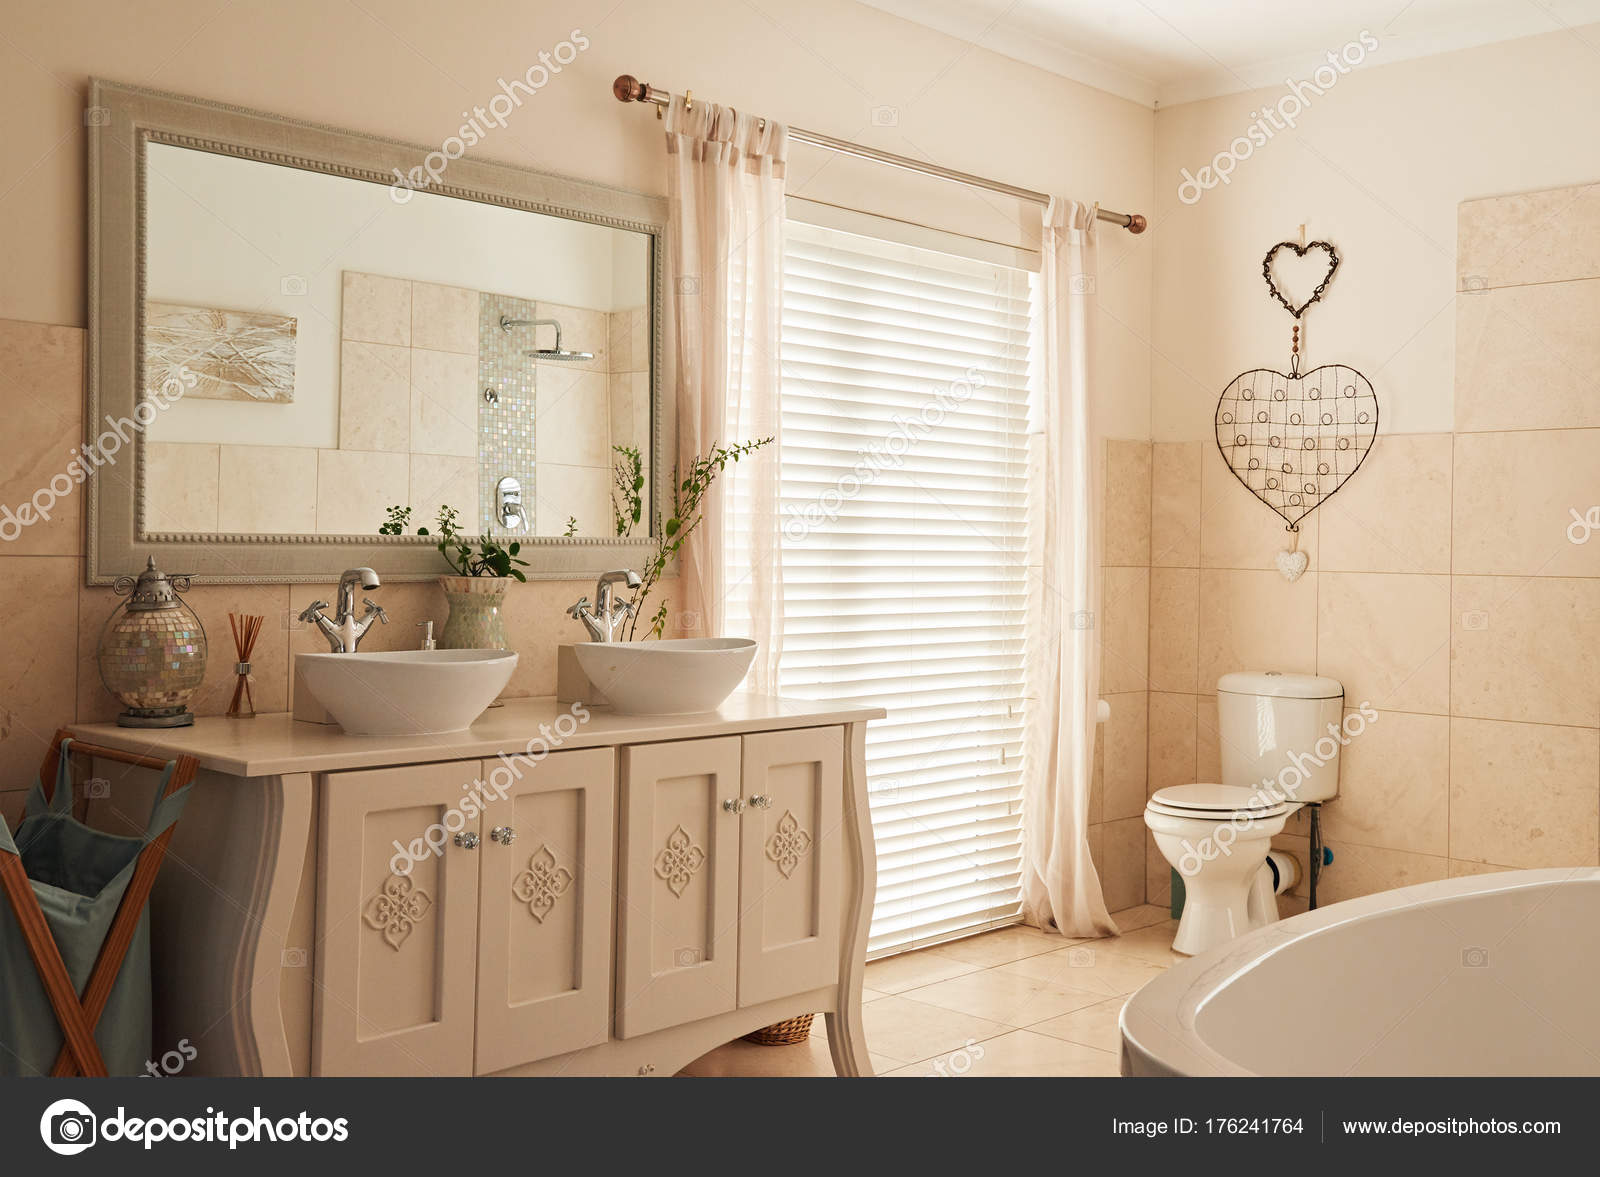 Bagno in stile country u foto stock mavoimages